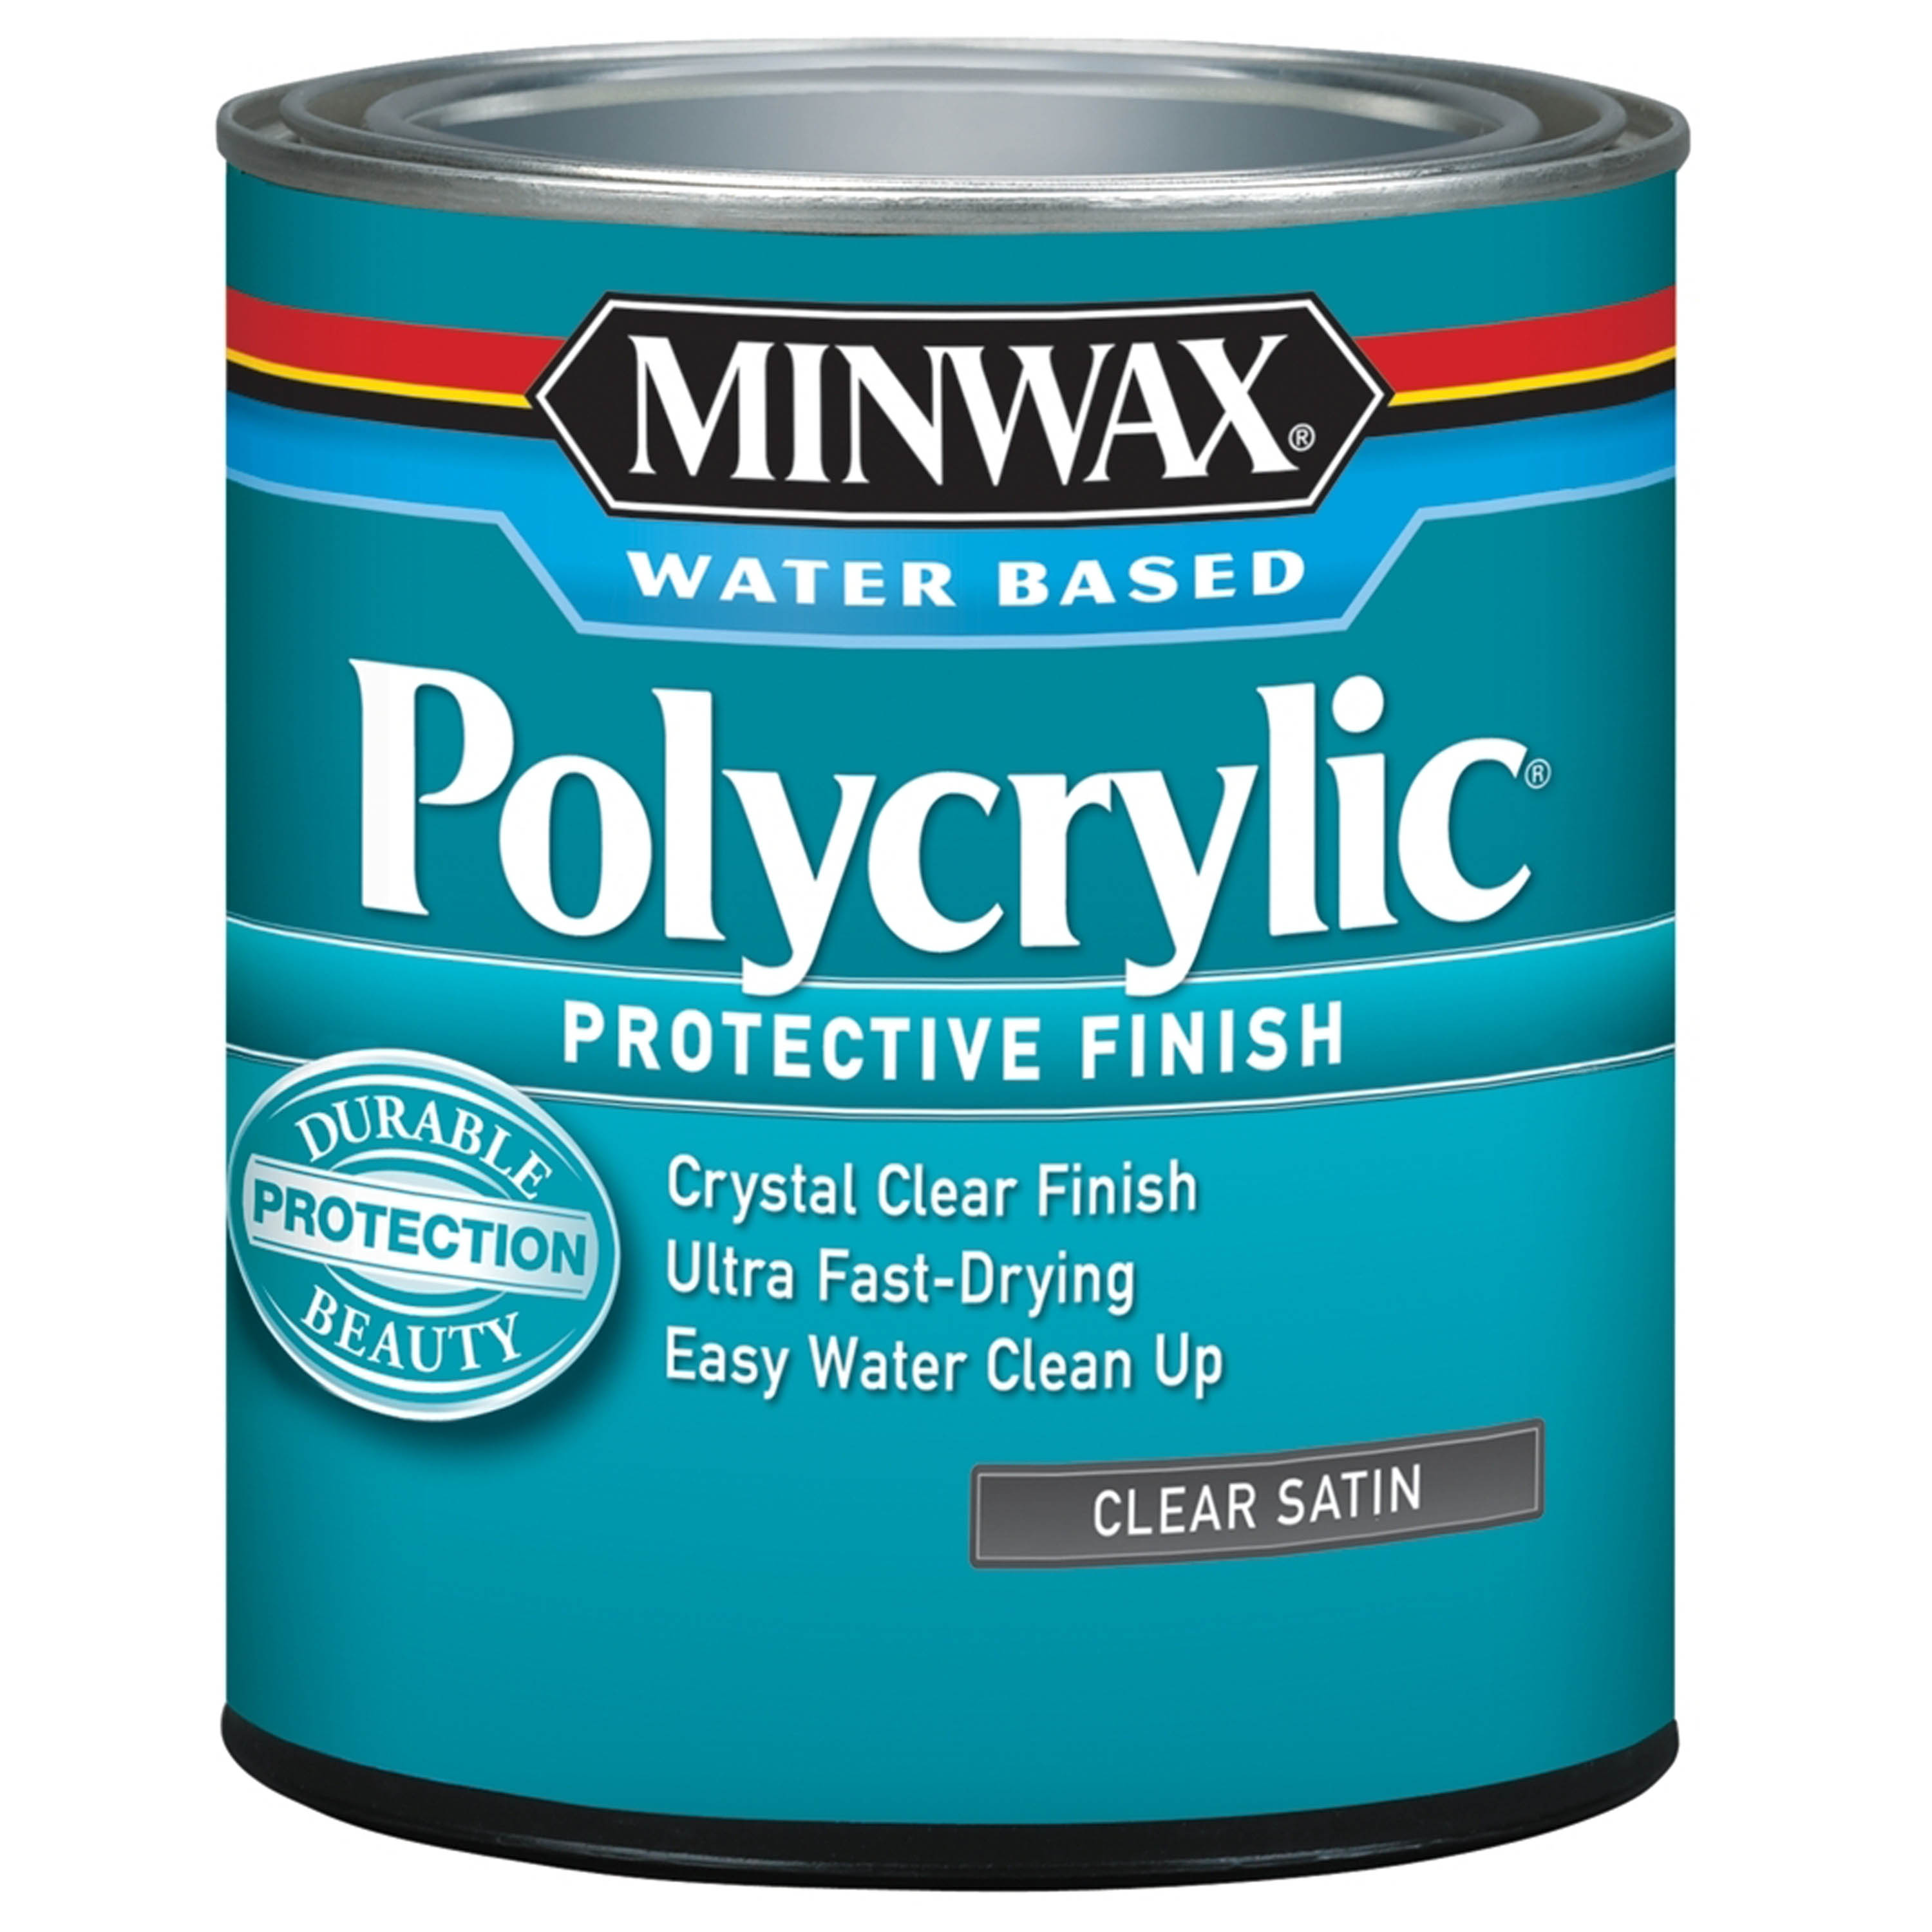 Minwax Polycrylic Clear Satin 1-Qt